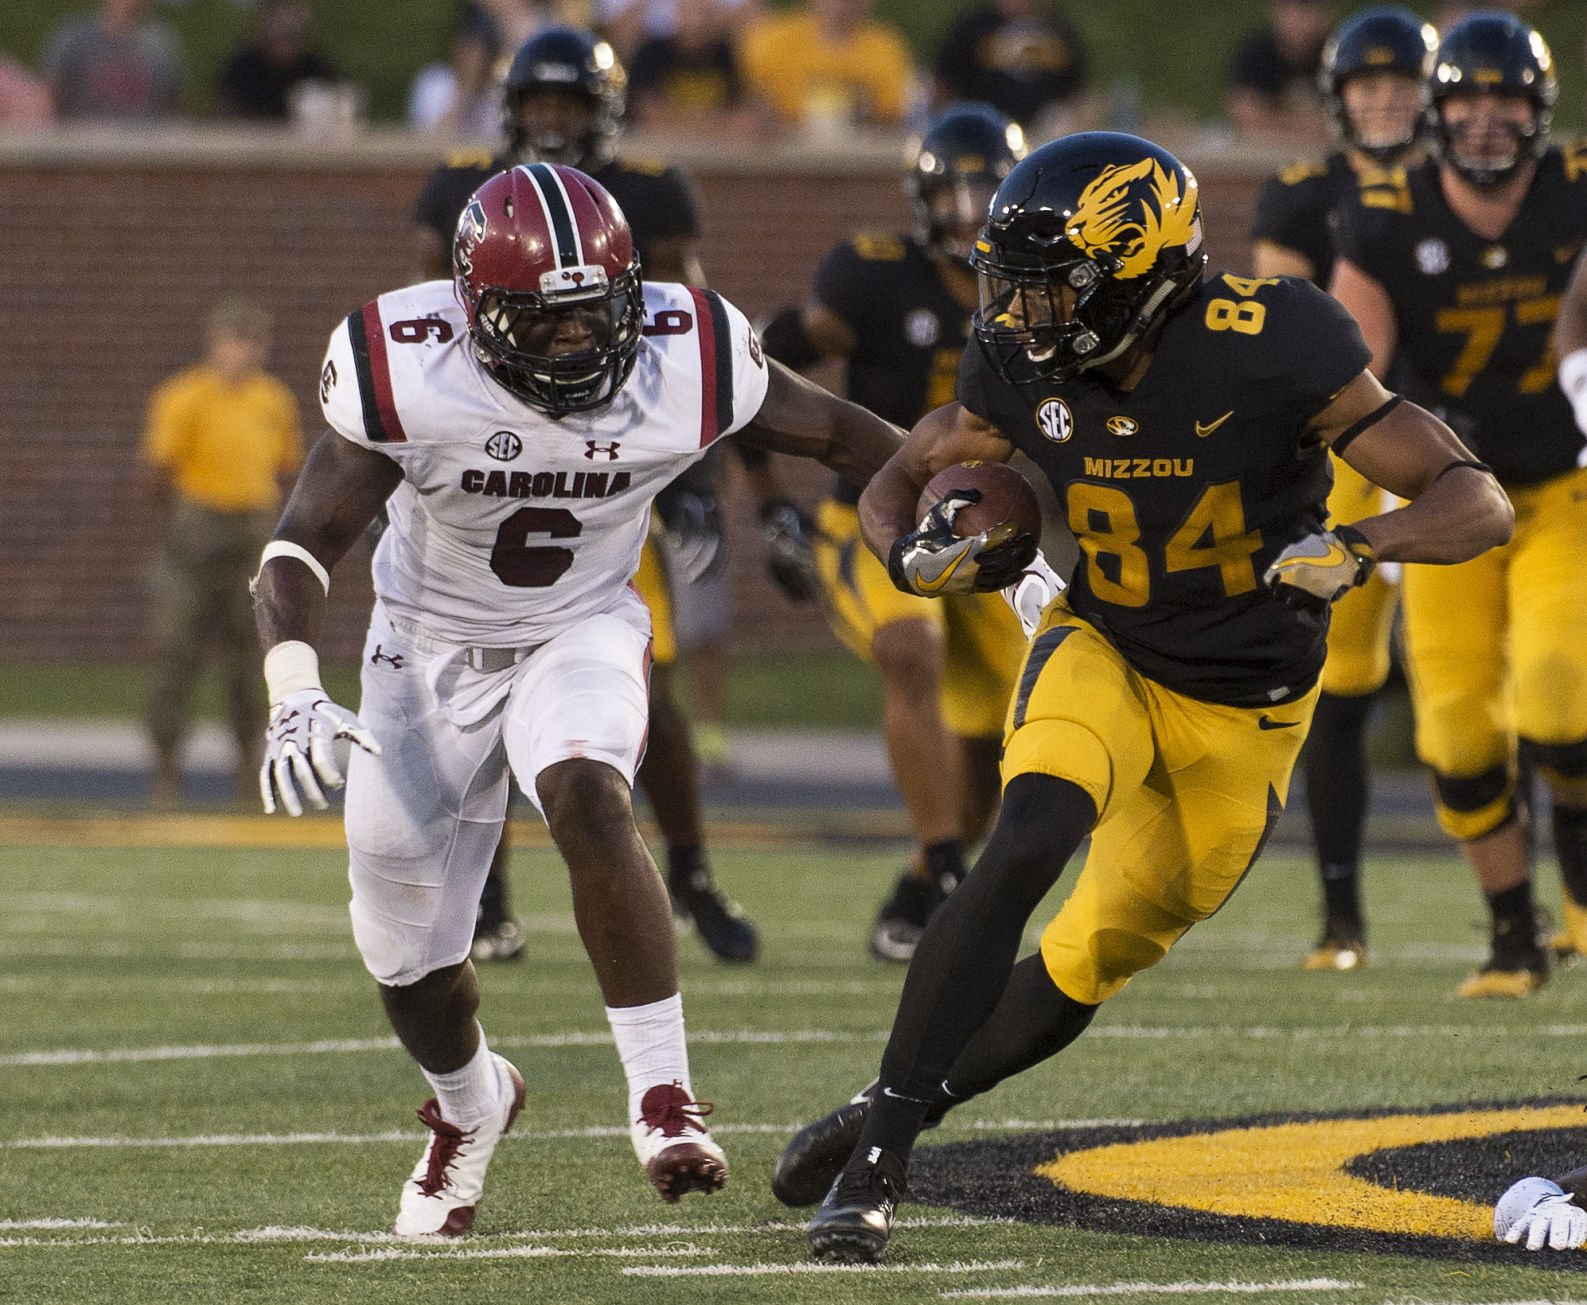 SC erases early deficit, beats Missouri 31-13